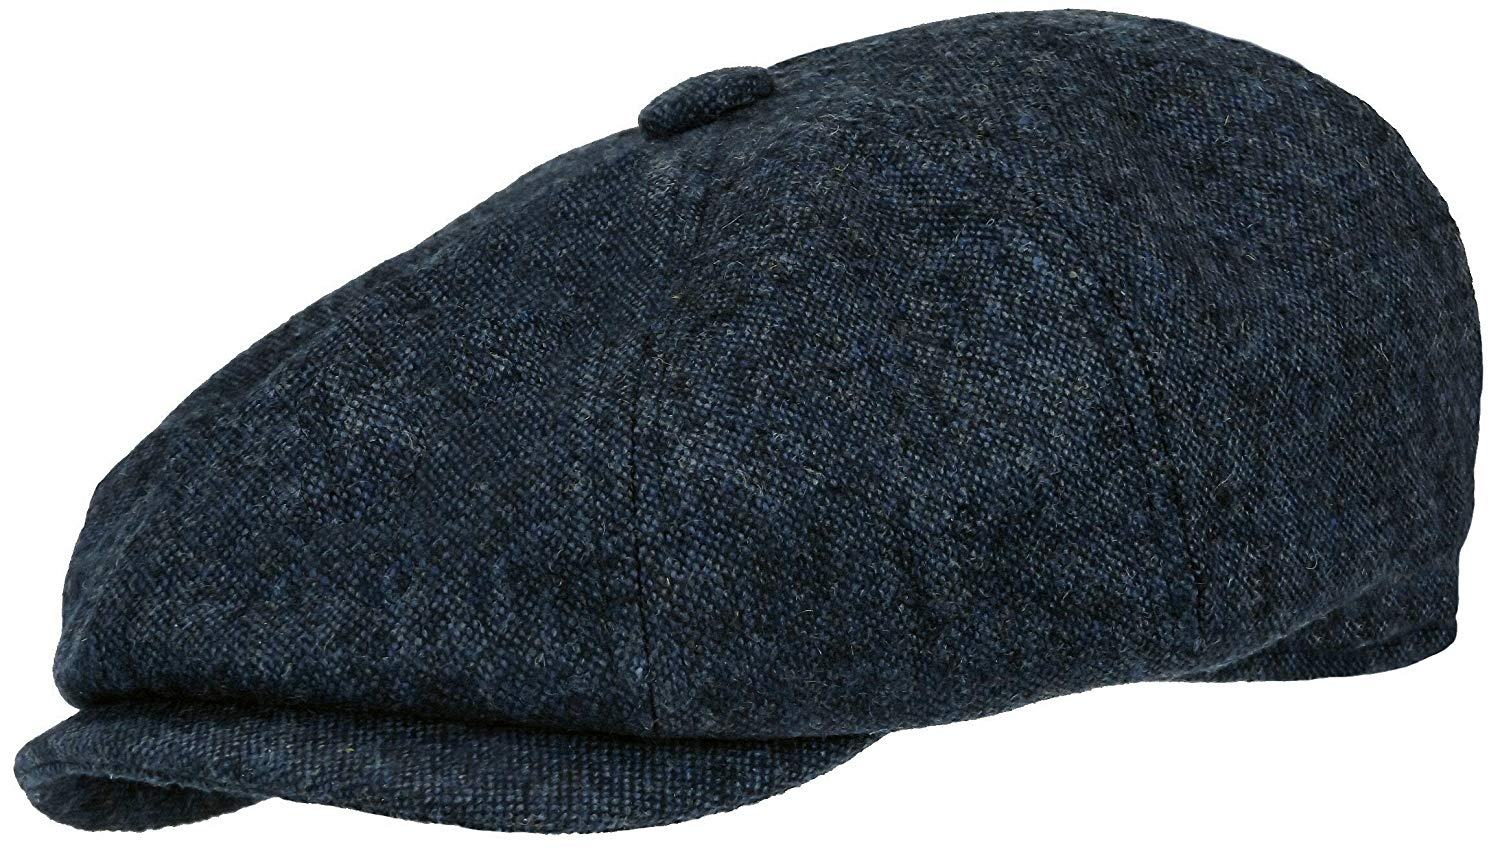 dda3ab585 Buy Rooster Herringbone Wool Tweed Newsboy Ivy Cap Gatsby Golf ...